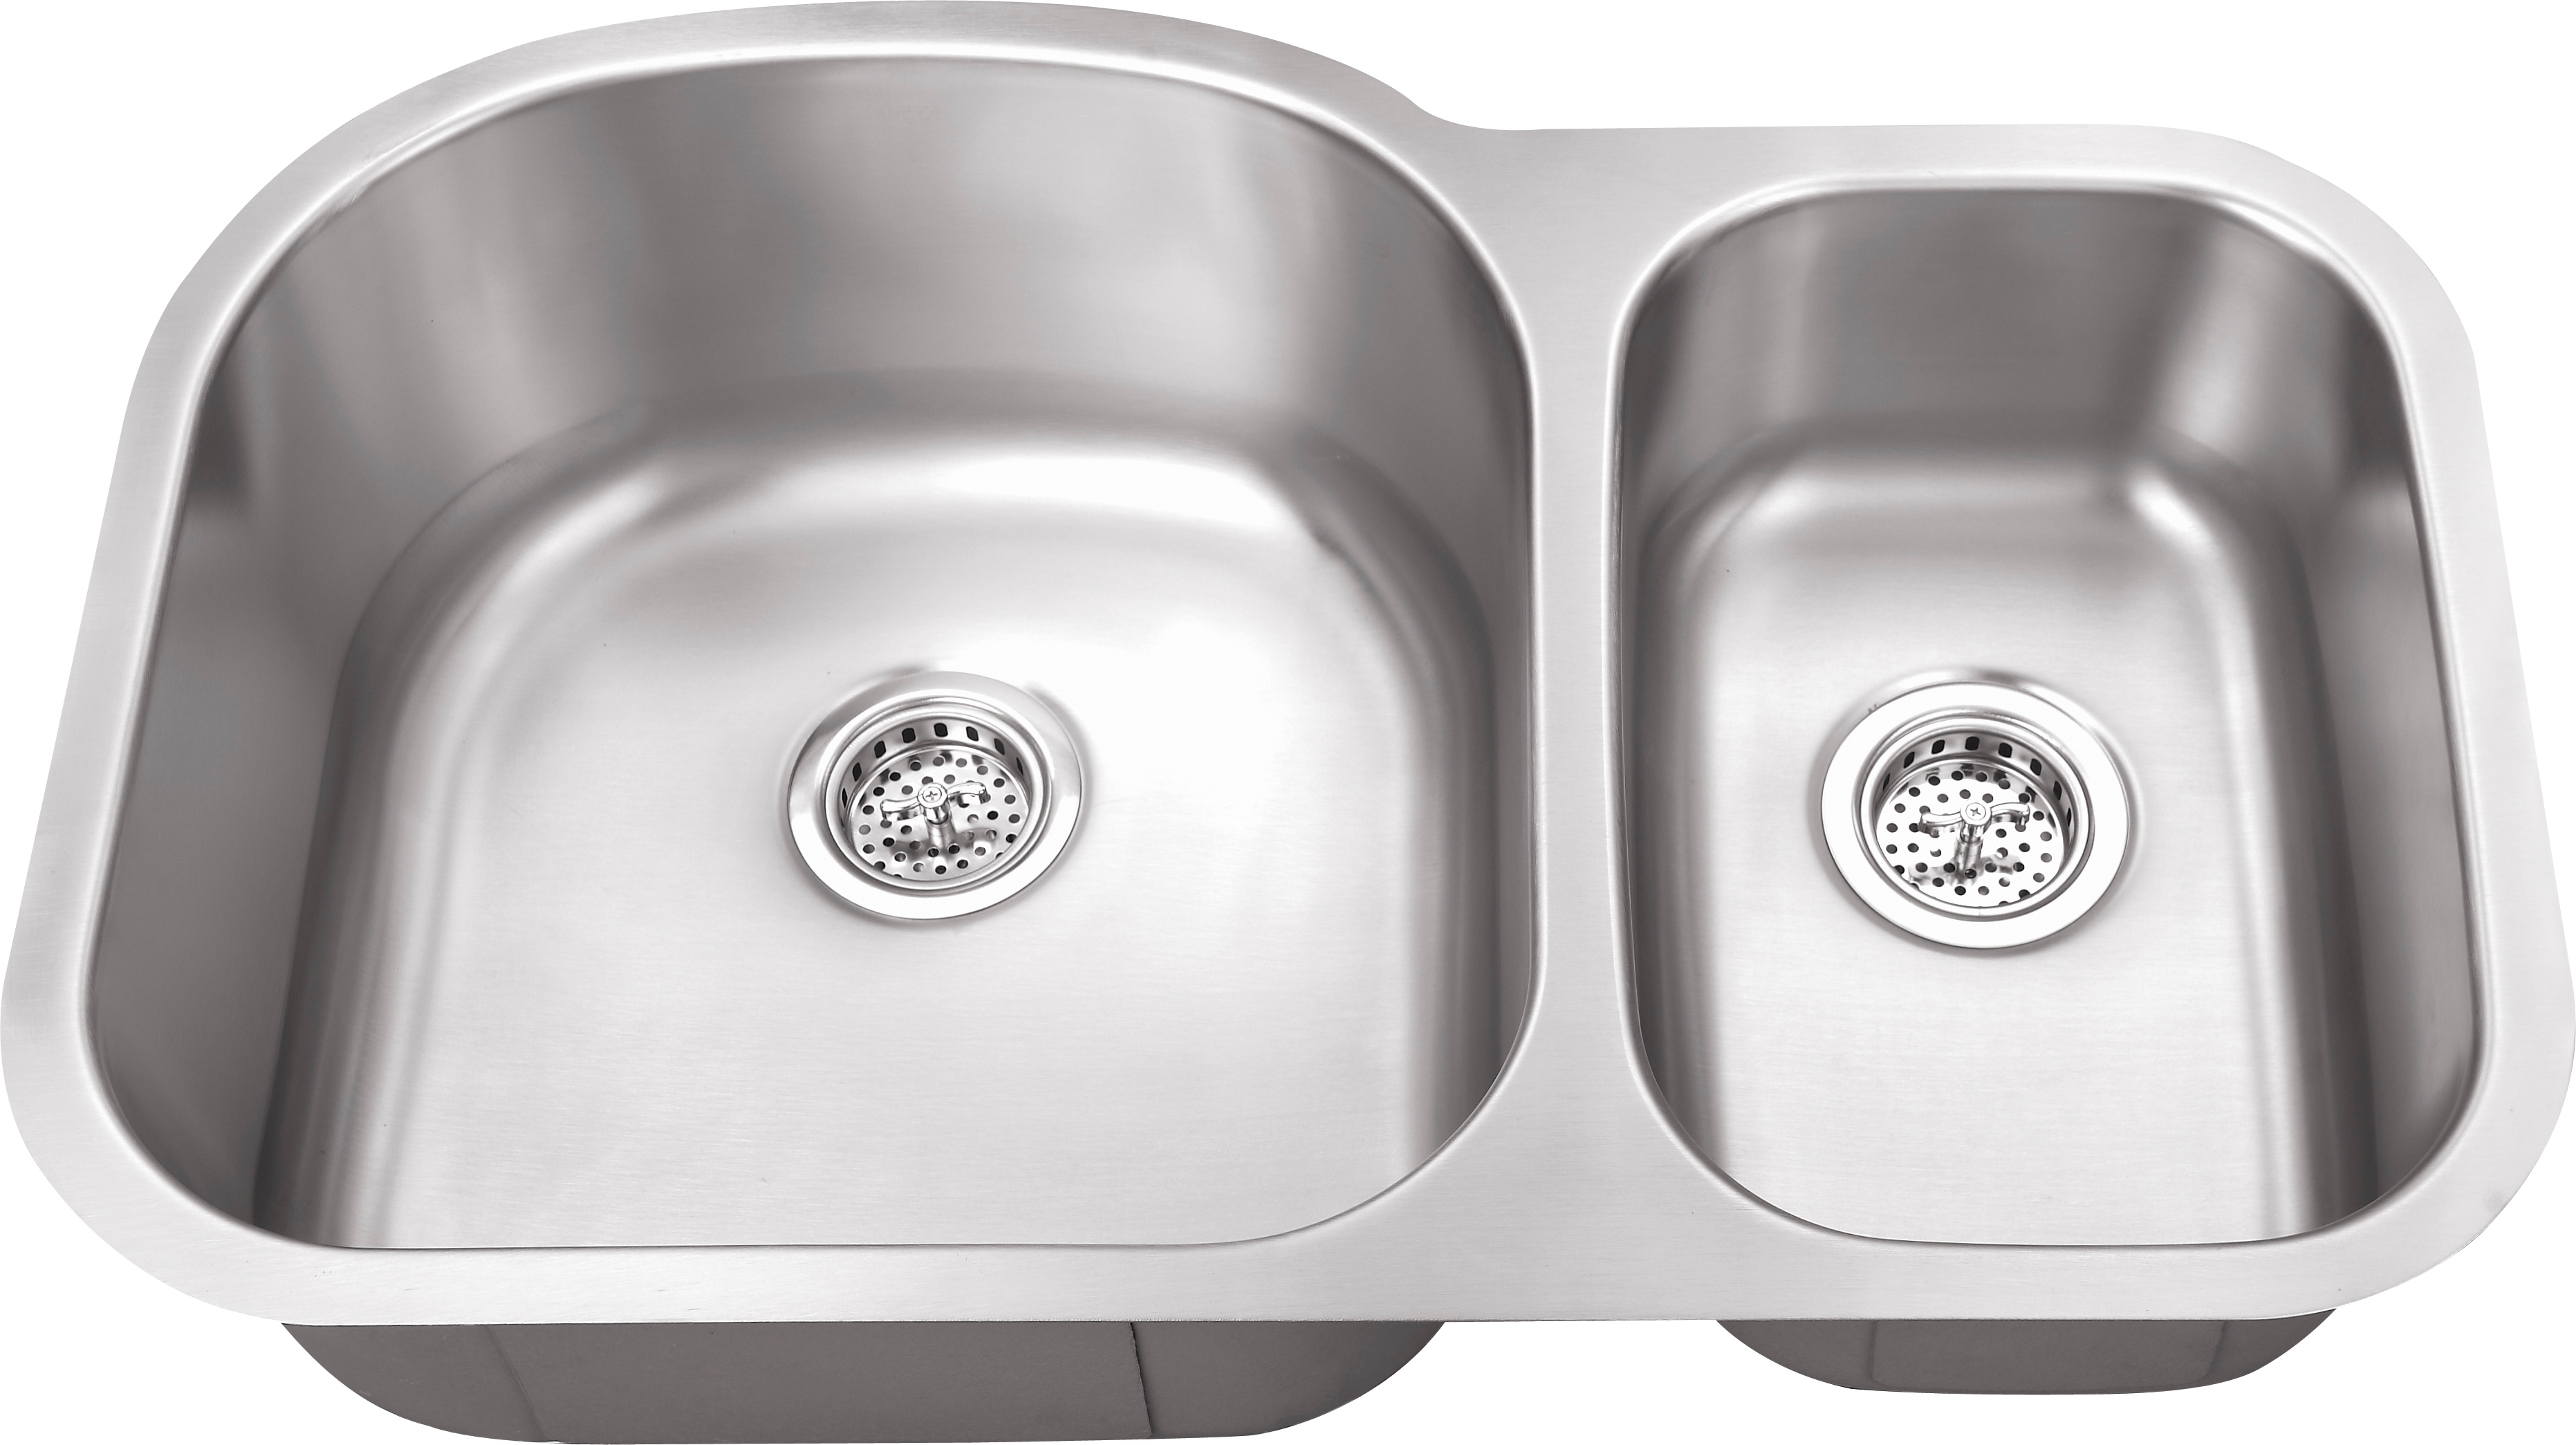 pittsburgh stainless sink - Kitchen Steel Sinks